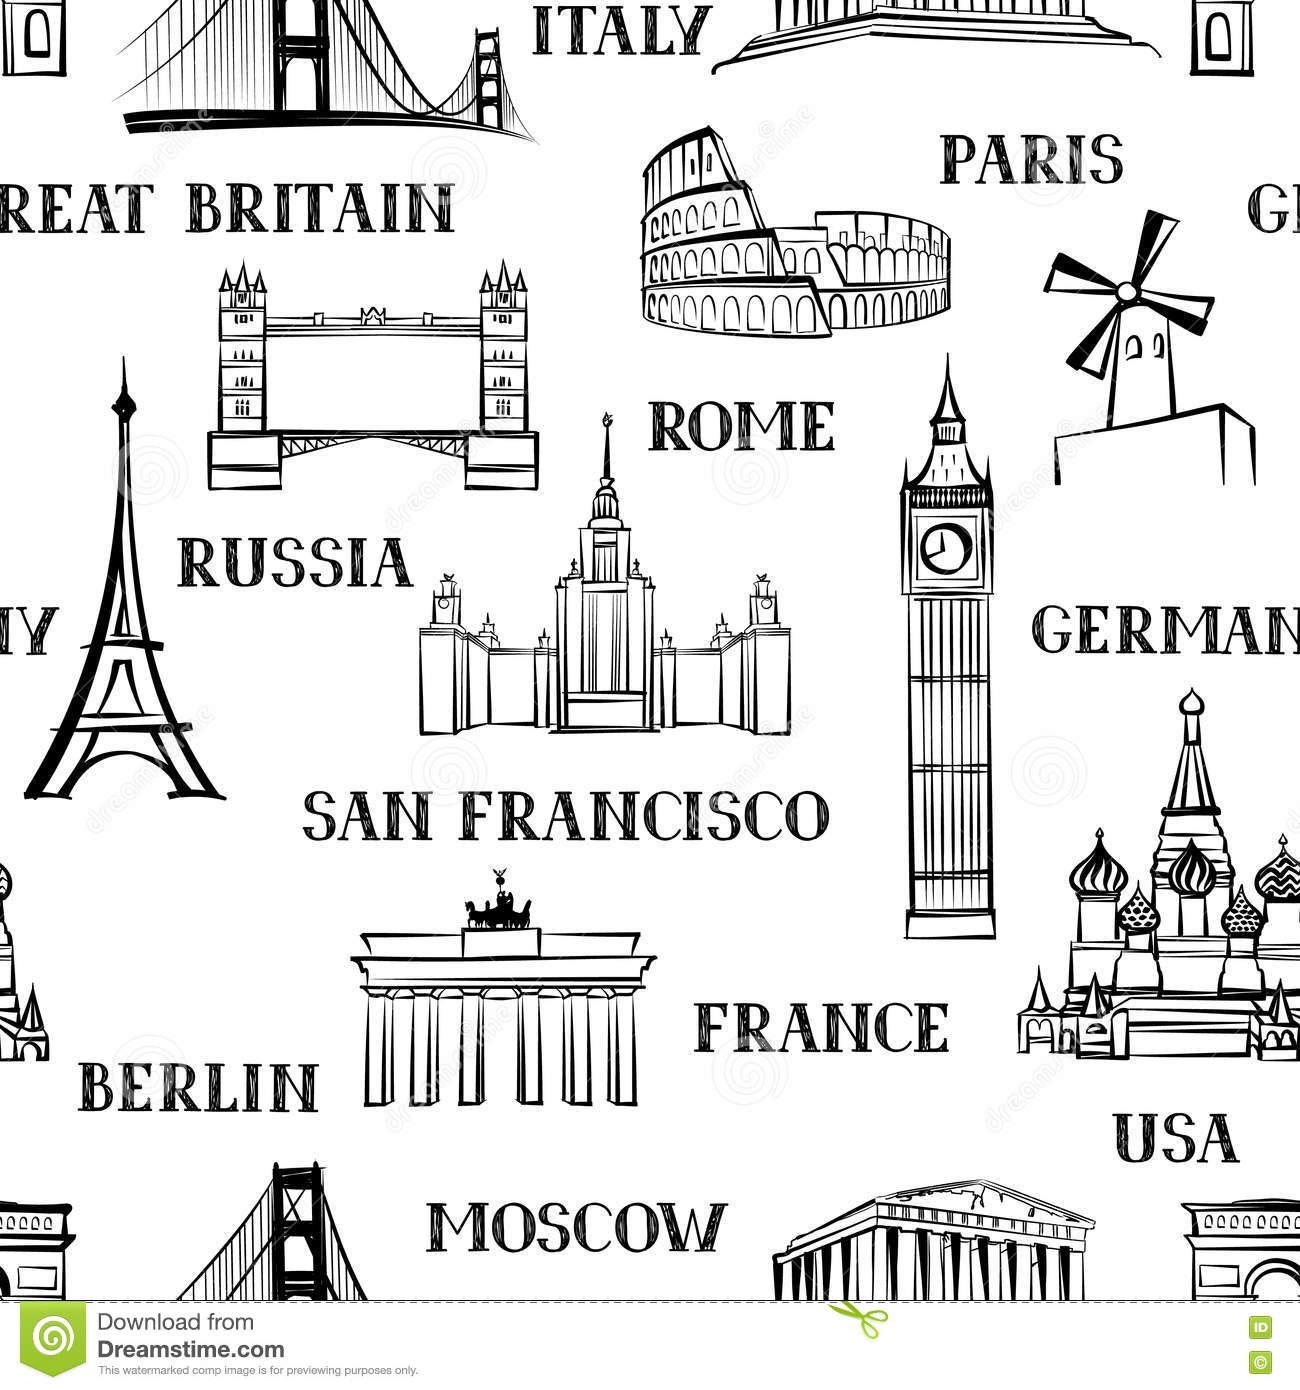 St Basils Cathedral Colouring Page likewise Black And White World Map 2 likewise Usa To Russia Coloring Page in addition 5 also Glacier Coloring Page. on places to visit in europe